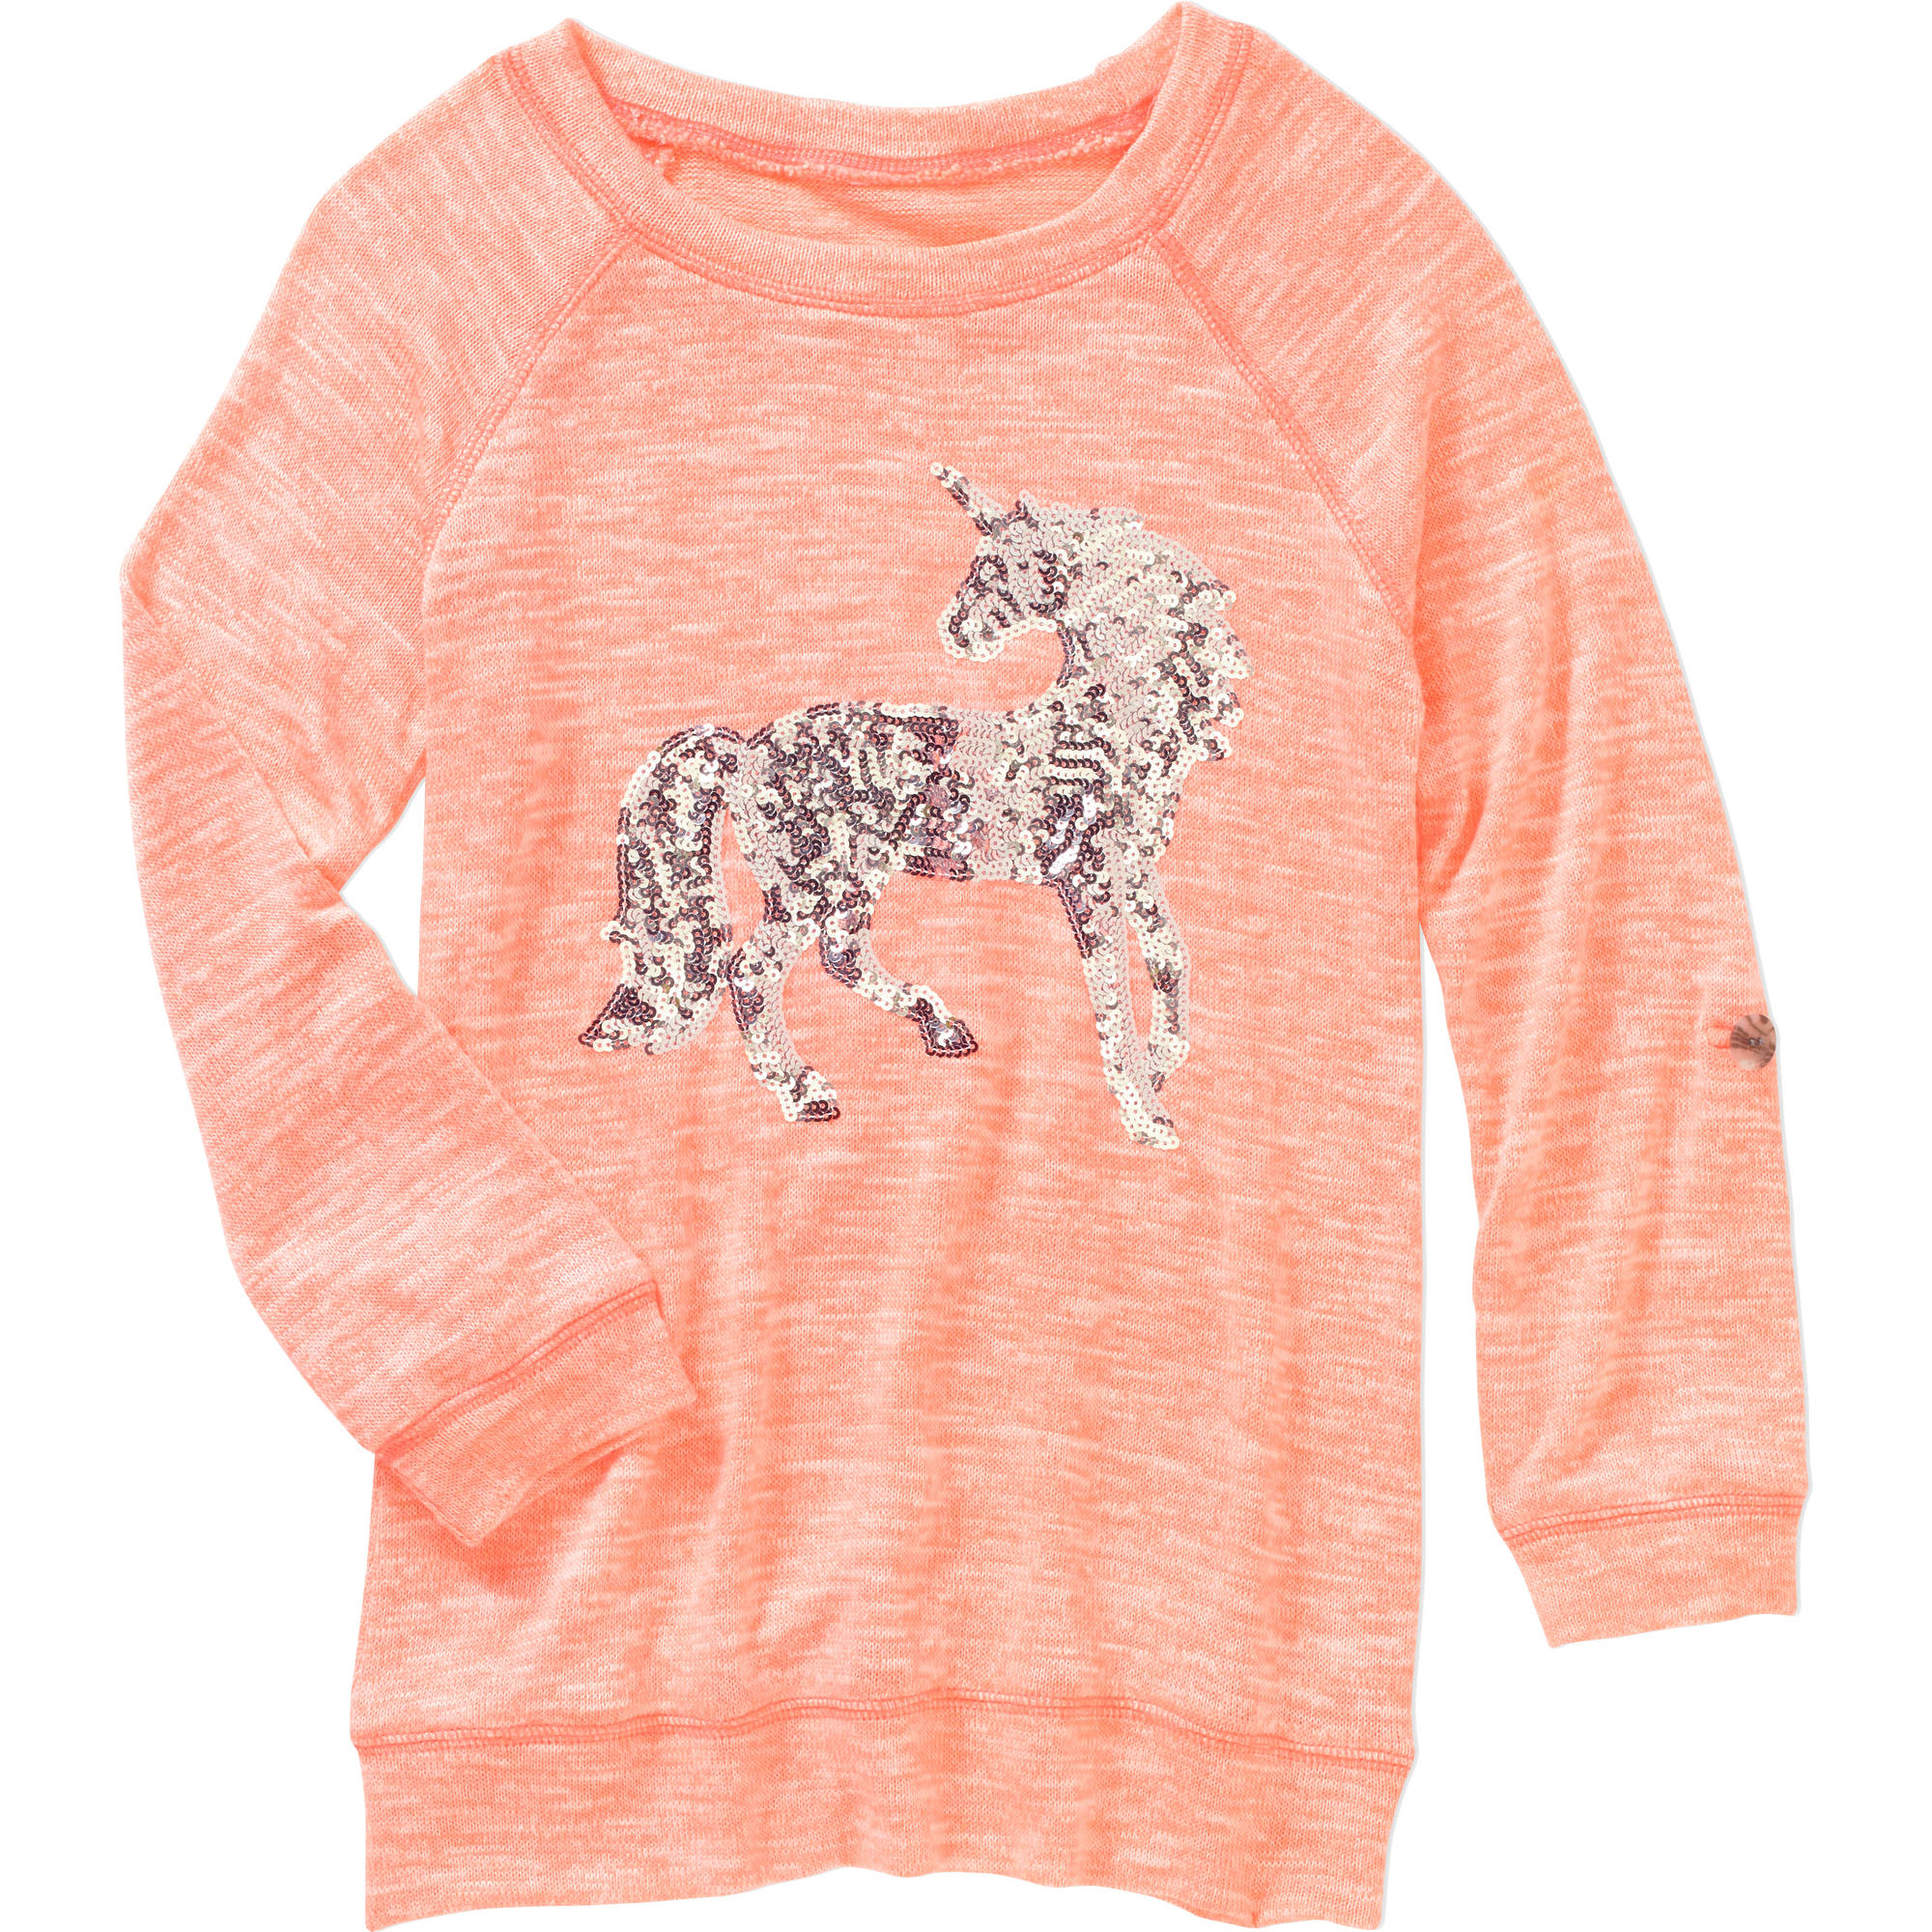 Miss Chievous Girls 3/4 Rolled Tab Sleeve Sequin Unicorn Top